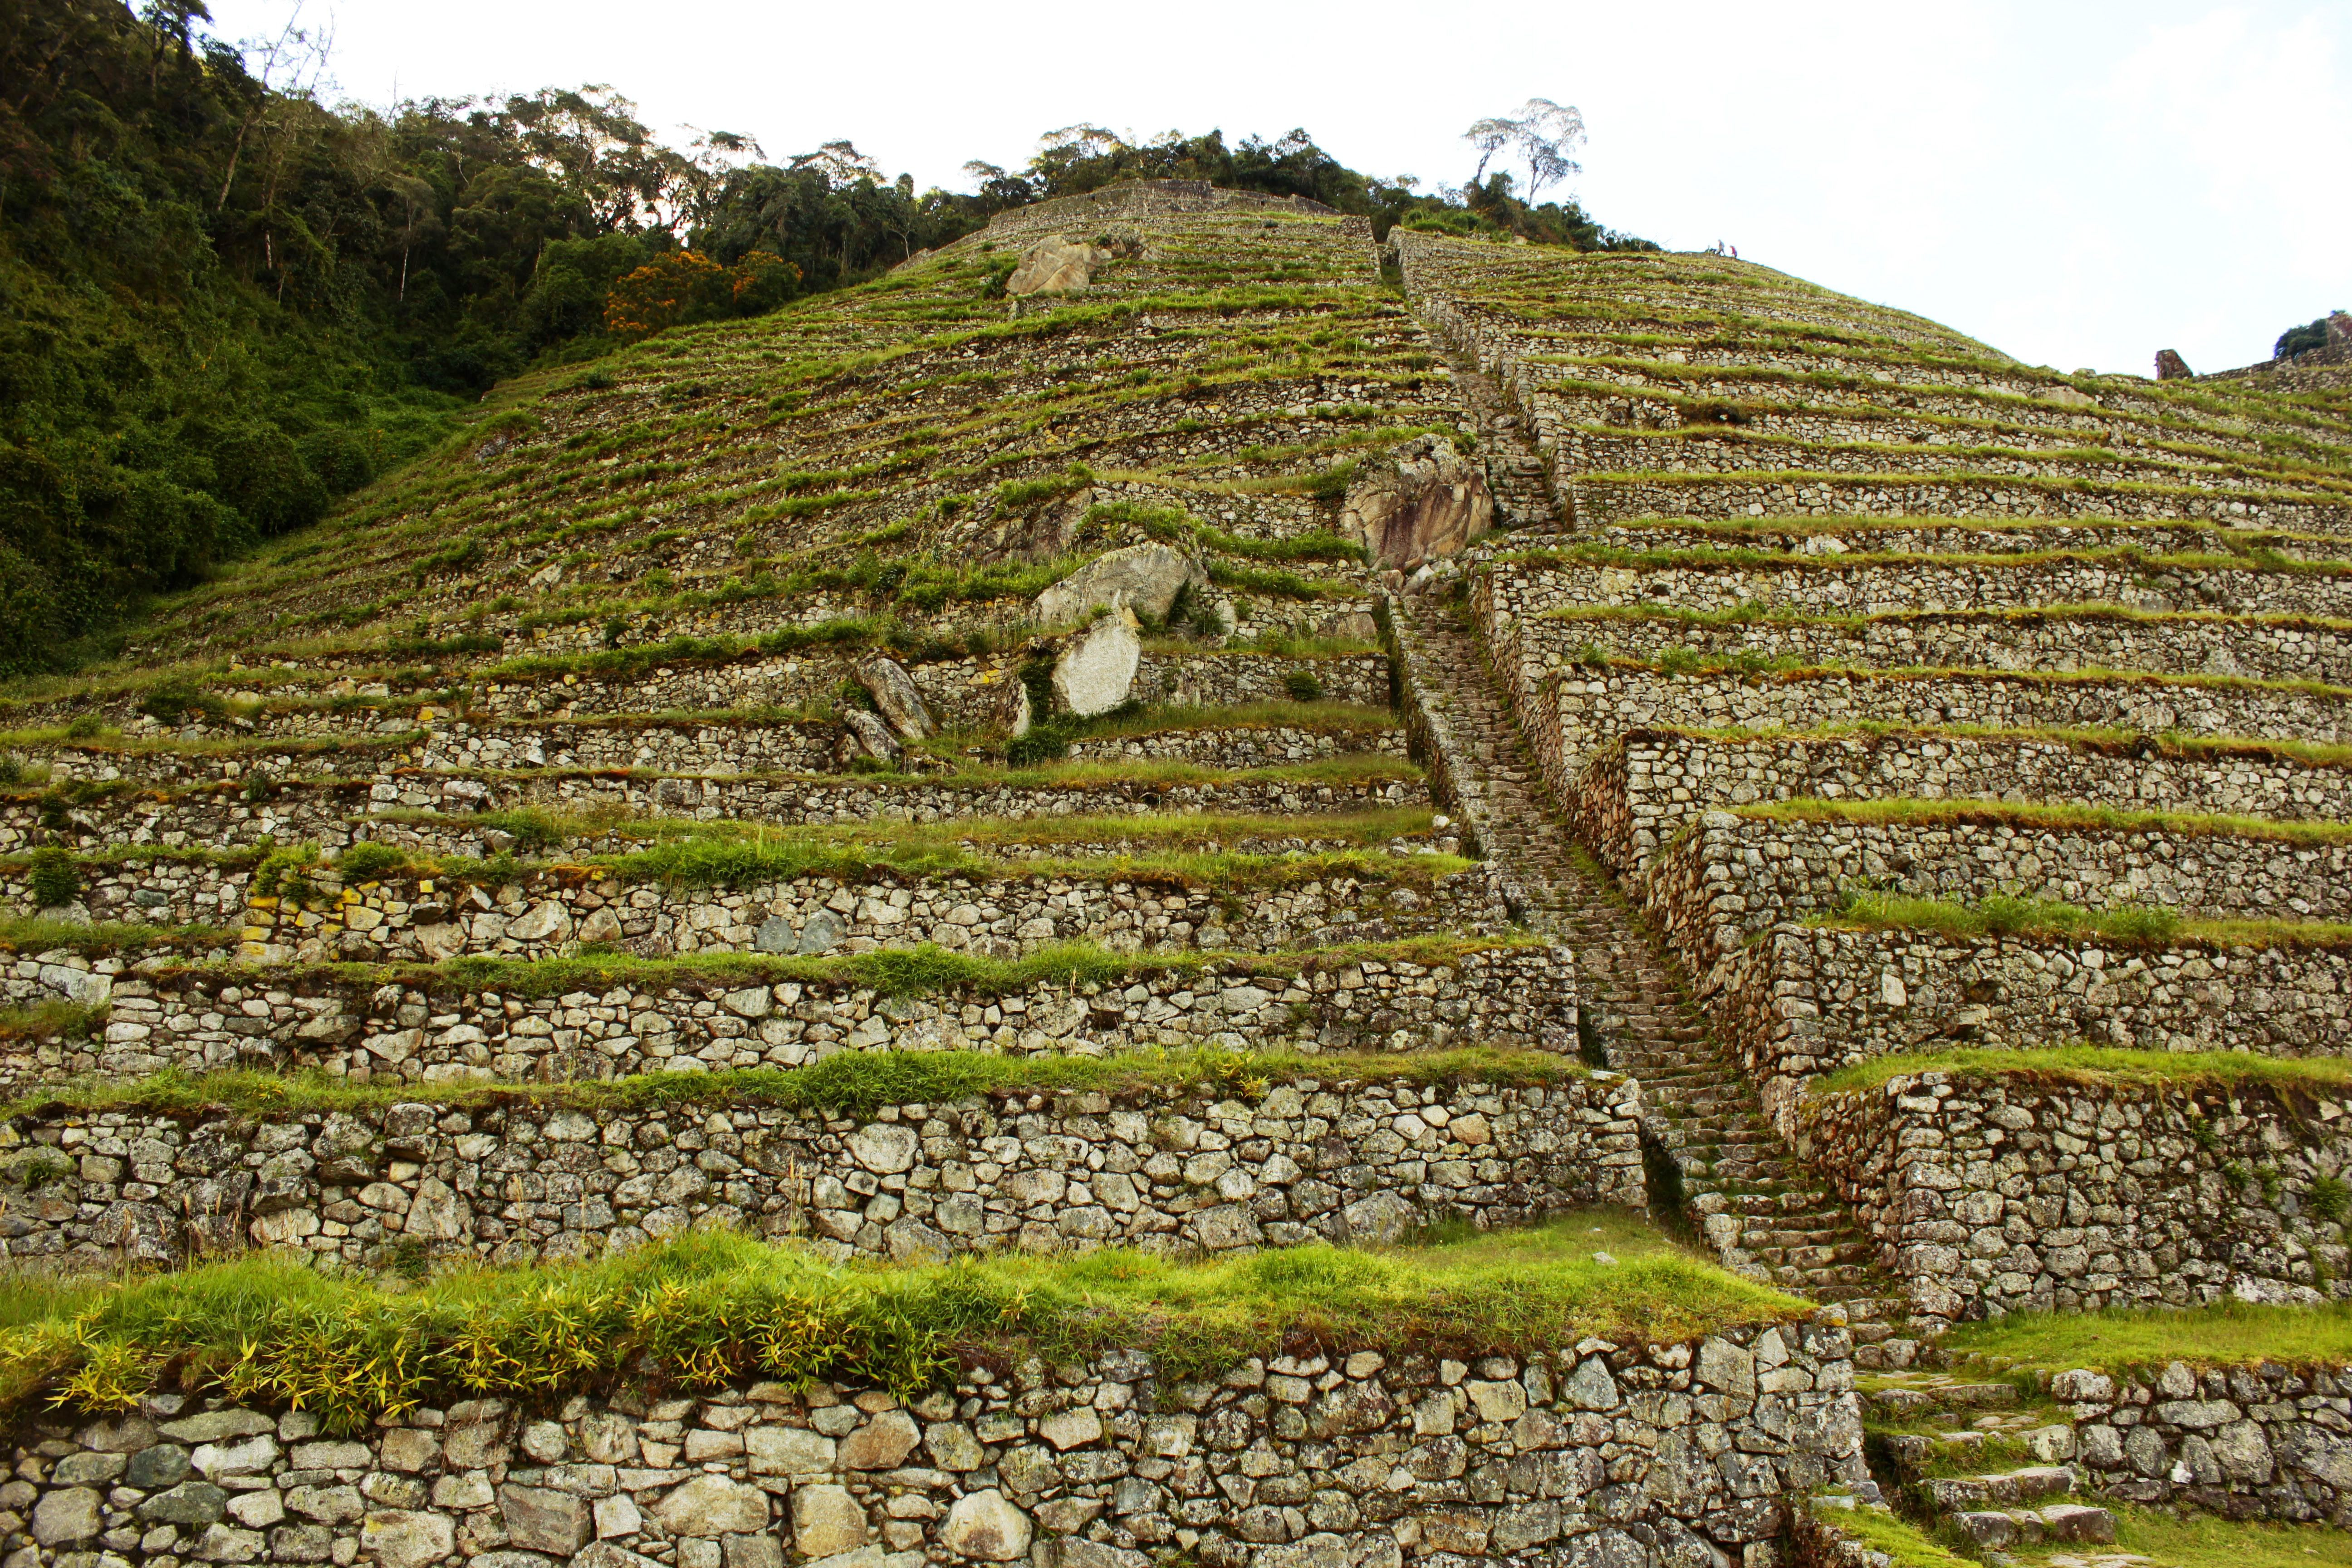 The Incan Trial